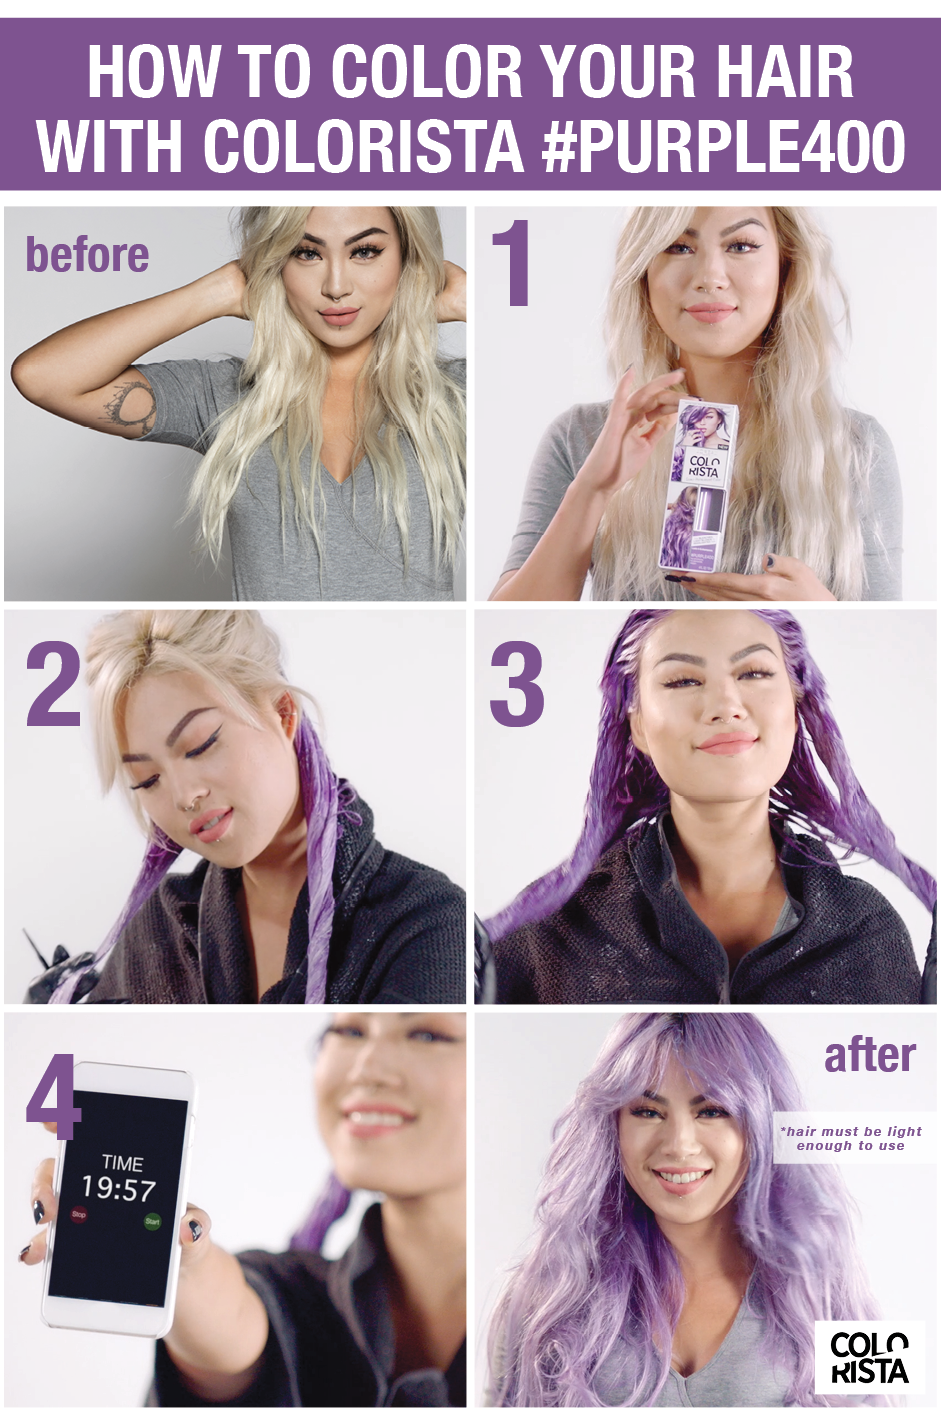 You Can Have Purple Hair With Colorista Make Sure To Leave On For 20 Minutes To Achieve The D Permanent Hair Color Semi Permanent Hair Color Blonde Hair Color